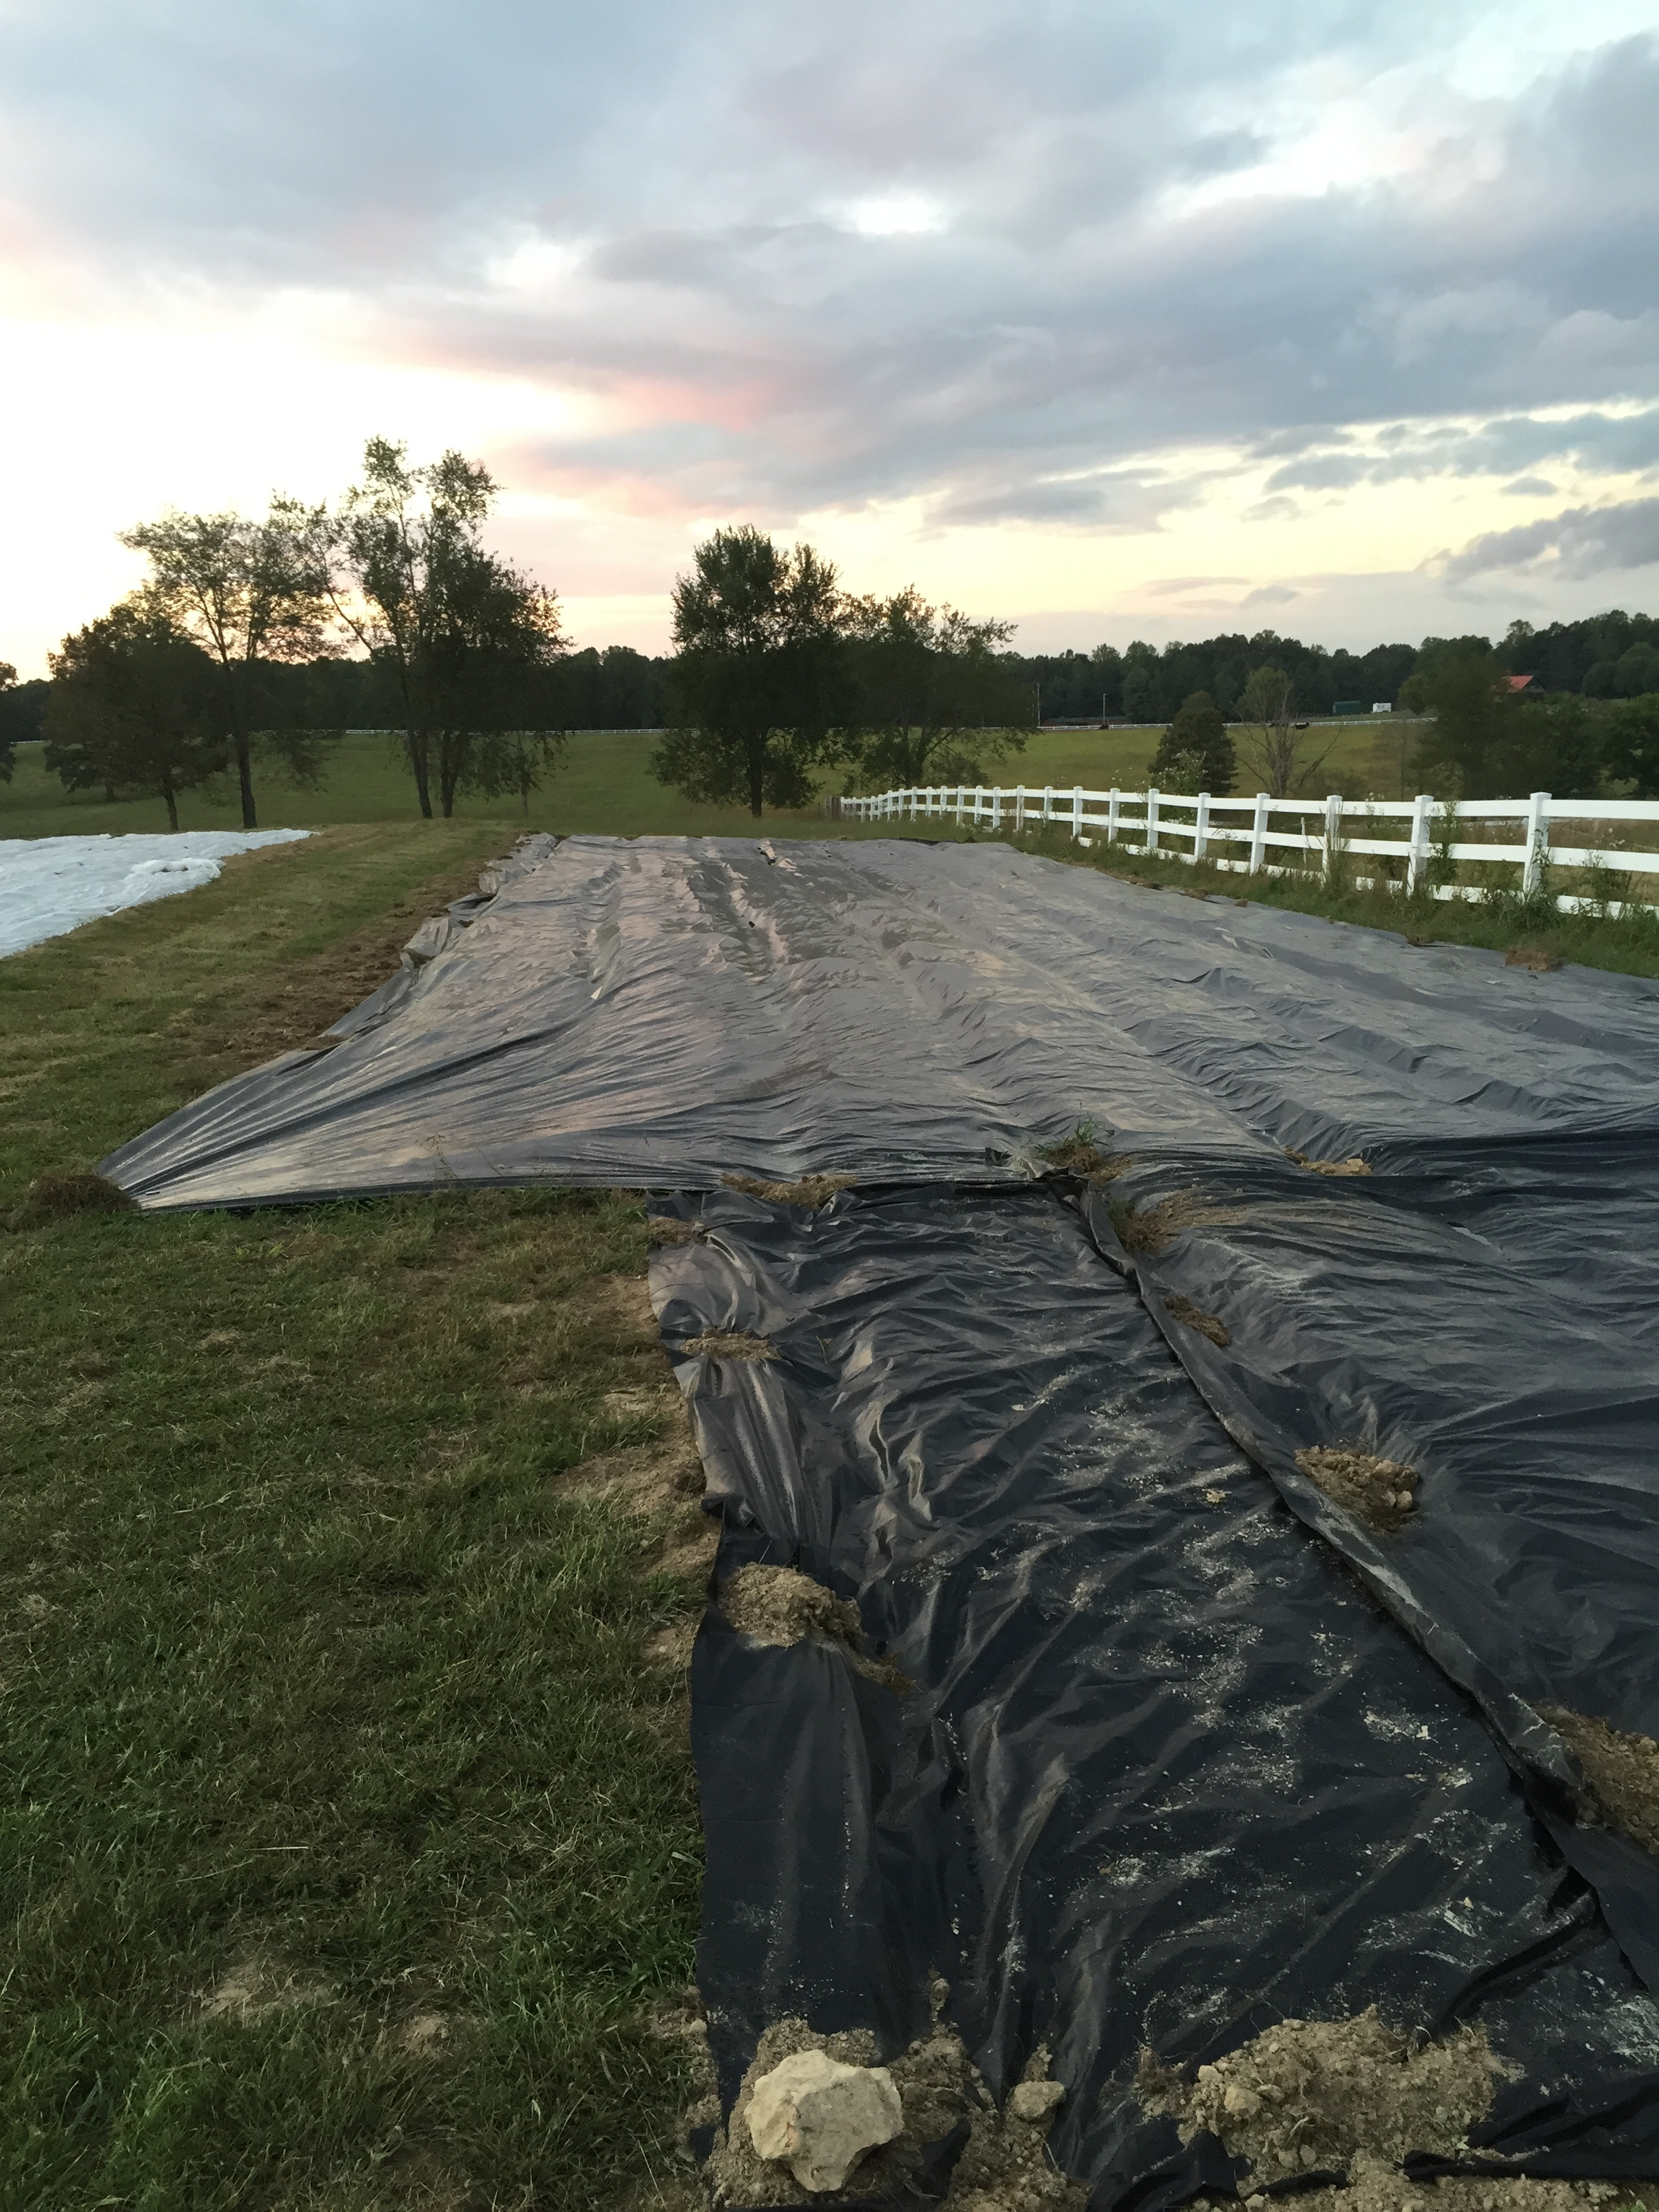 Using tarps to demolish weed seed for spring.